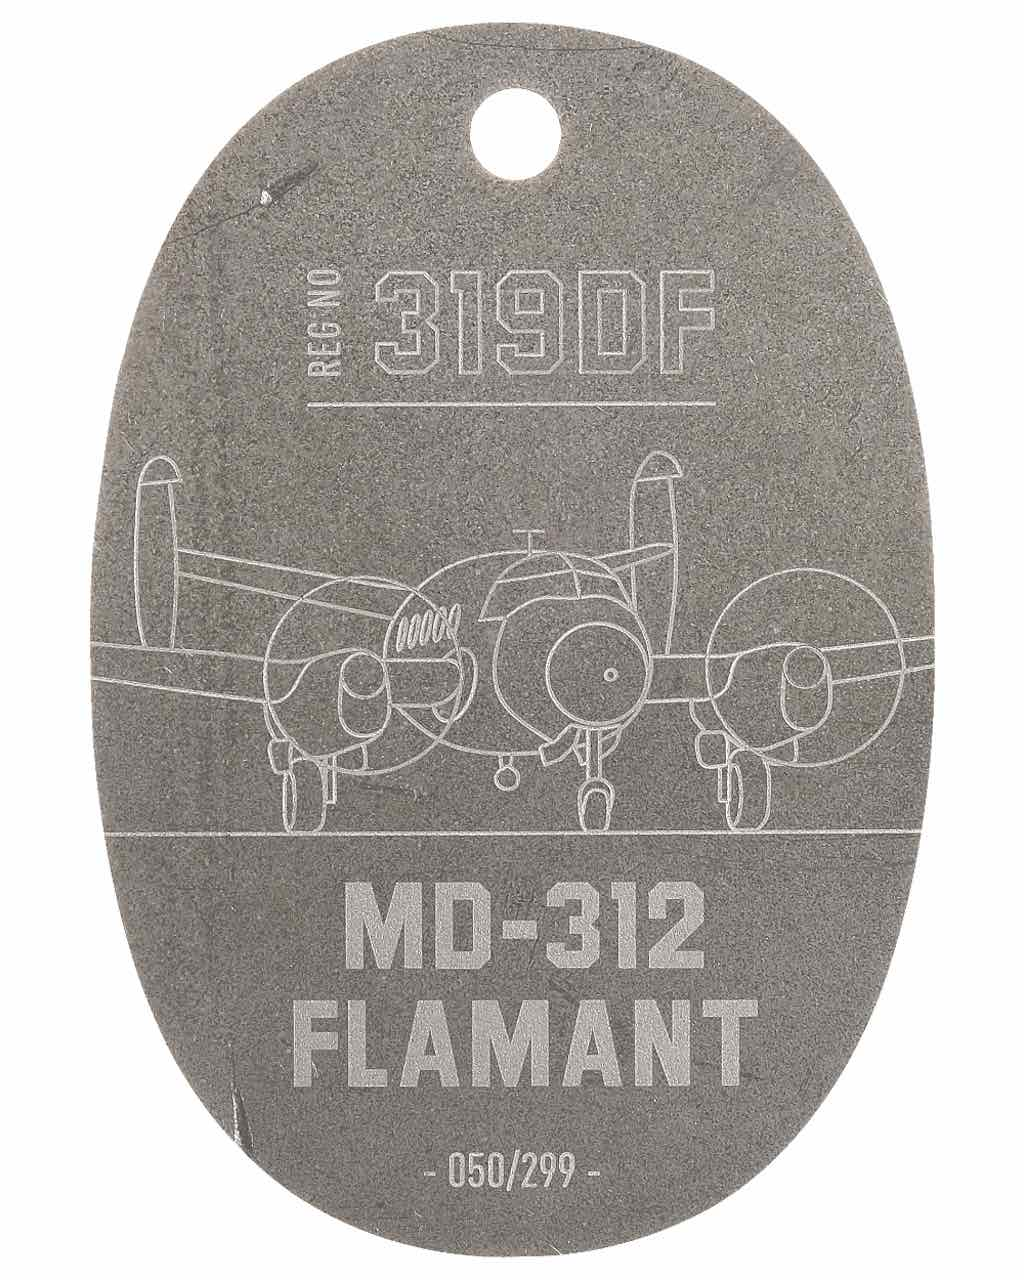 Flamant MD-312